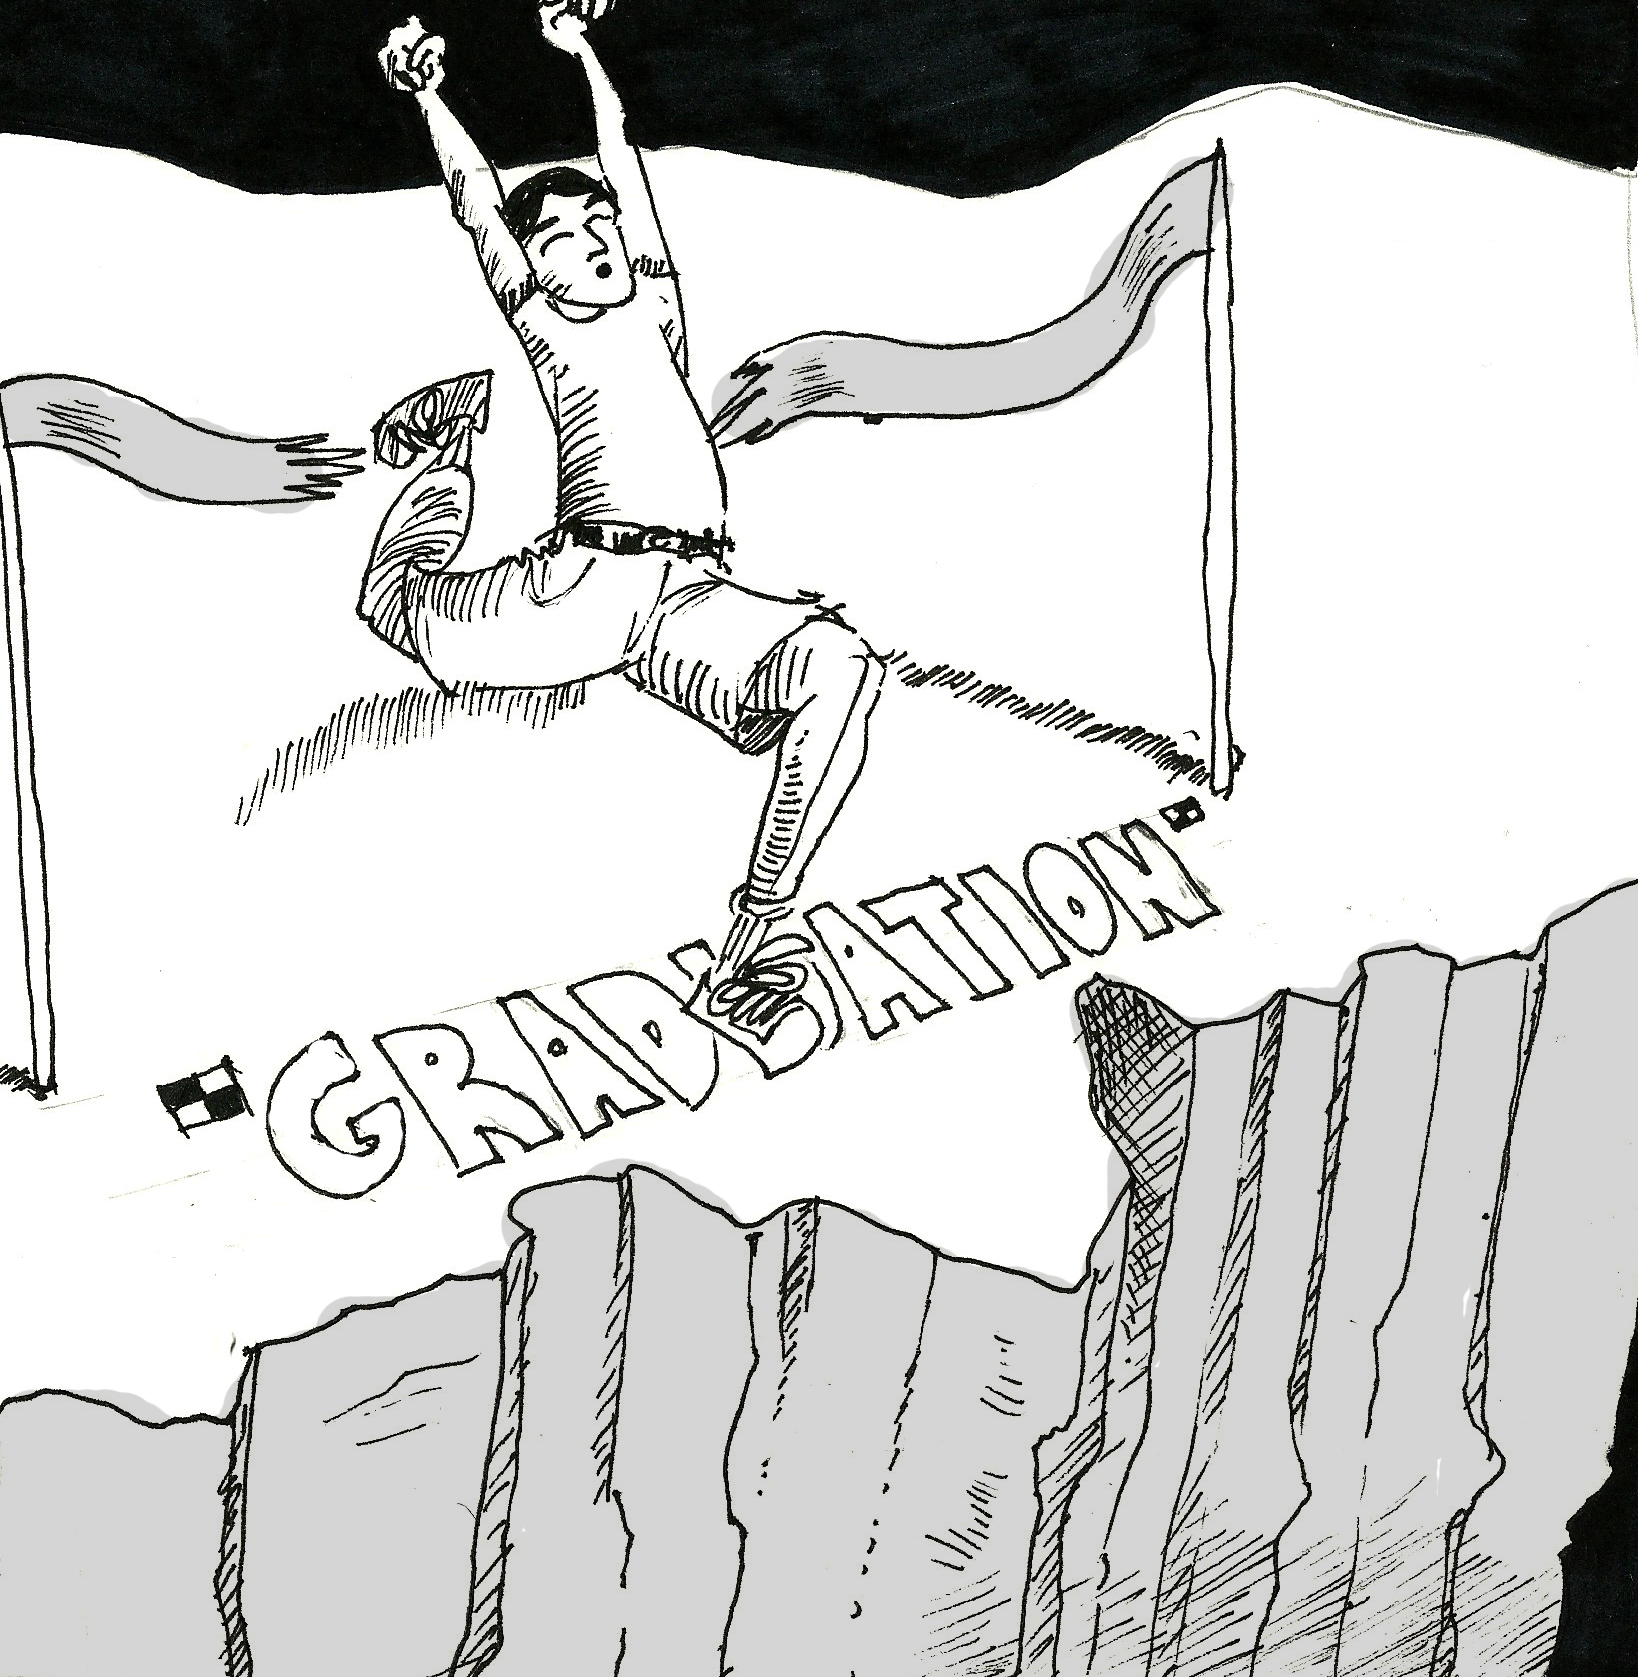 The Chasm of Uncertainty